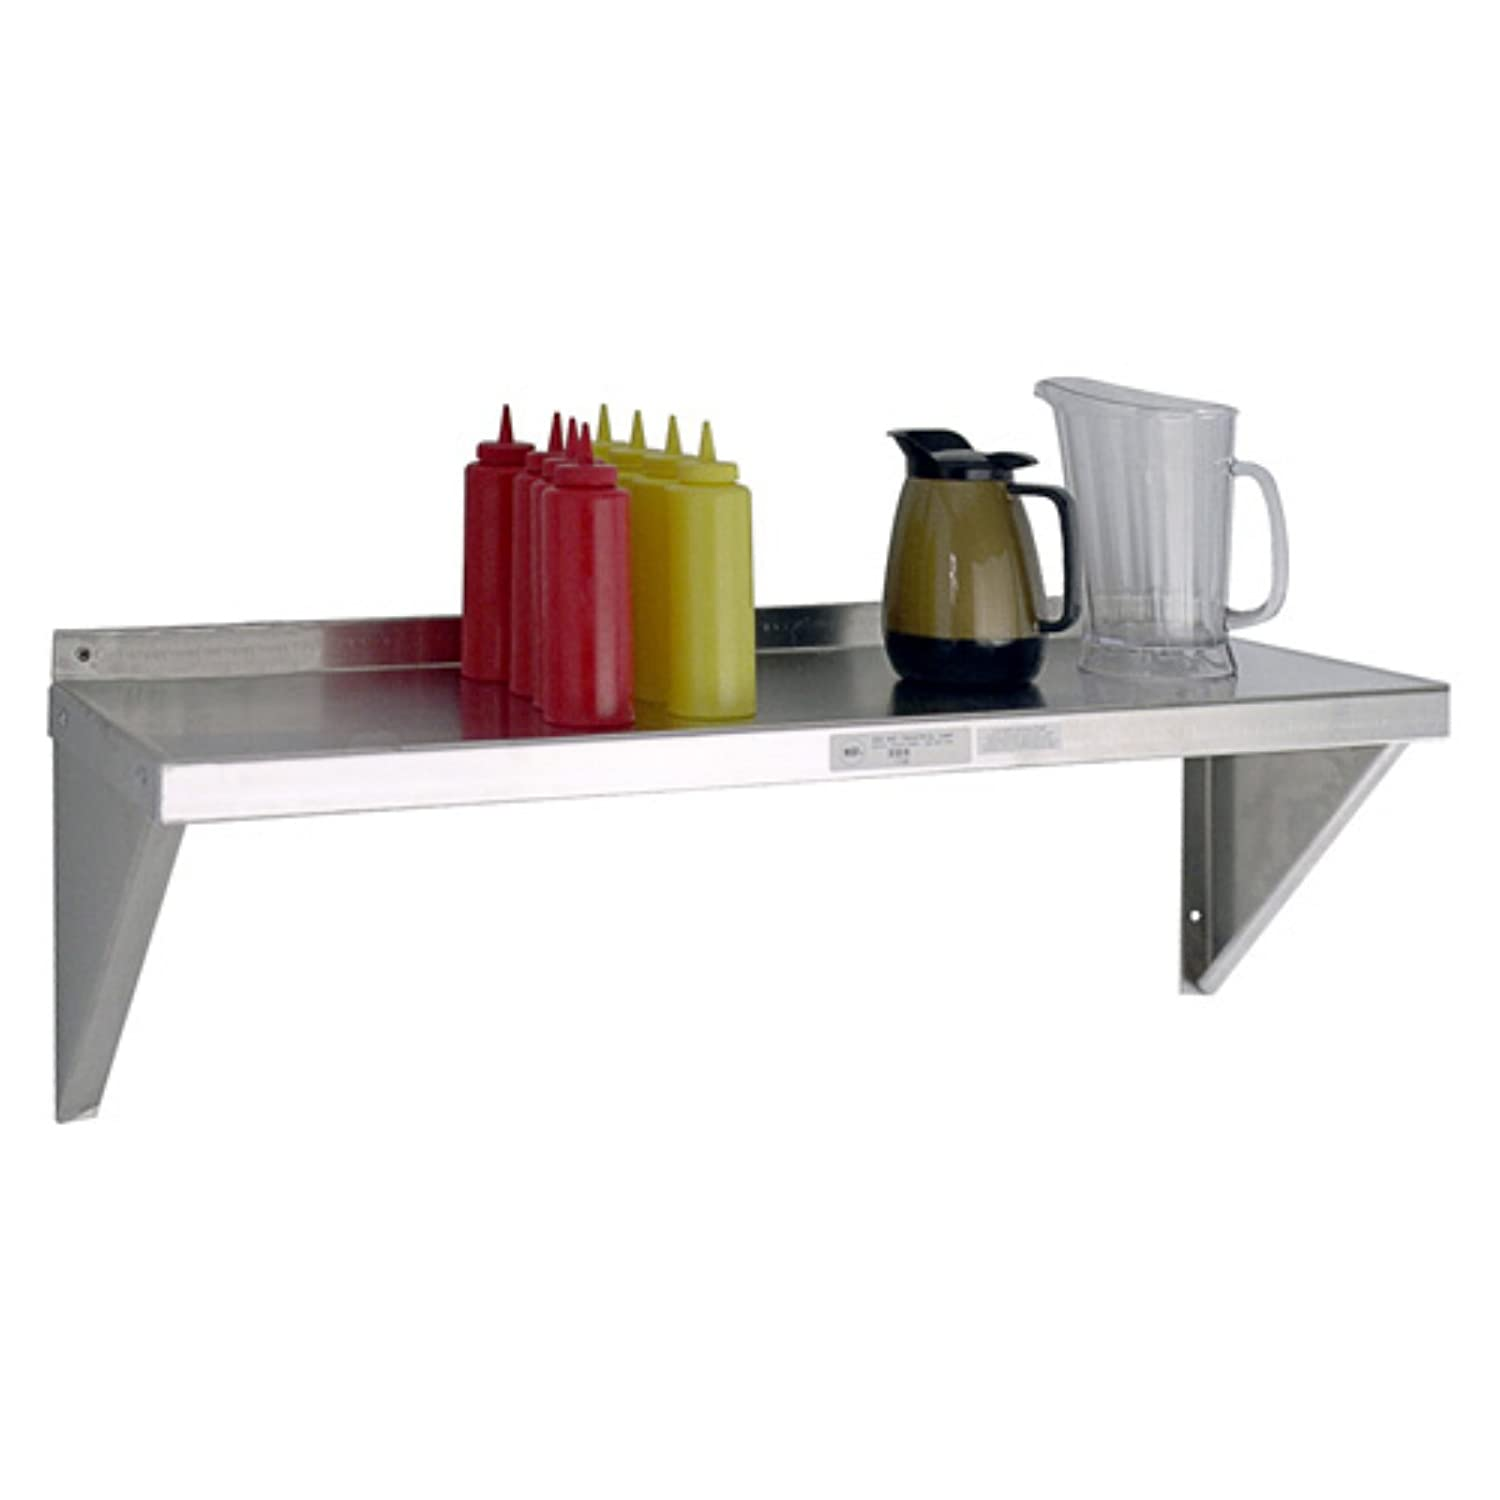 Image of Floating Shelves New Age, 94136, Wall Shelf, 13-1/2Inh, 60Inw, 18Ind